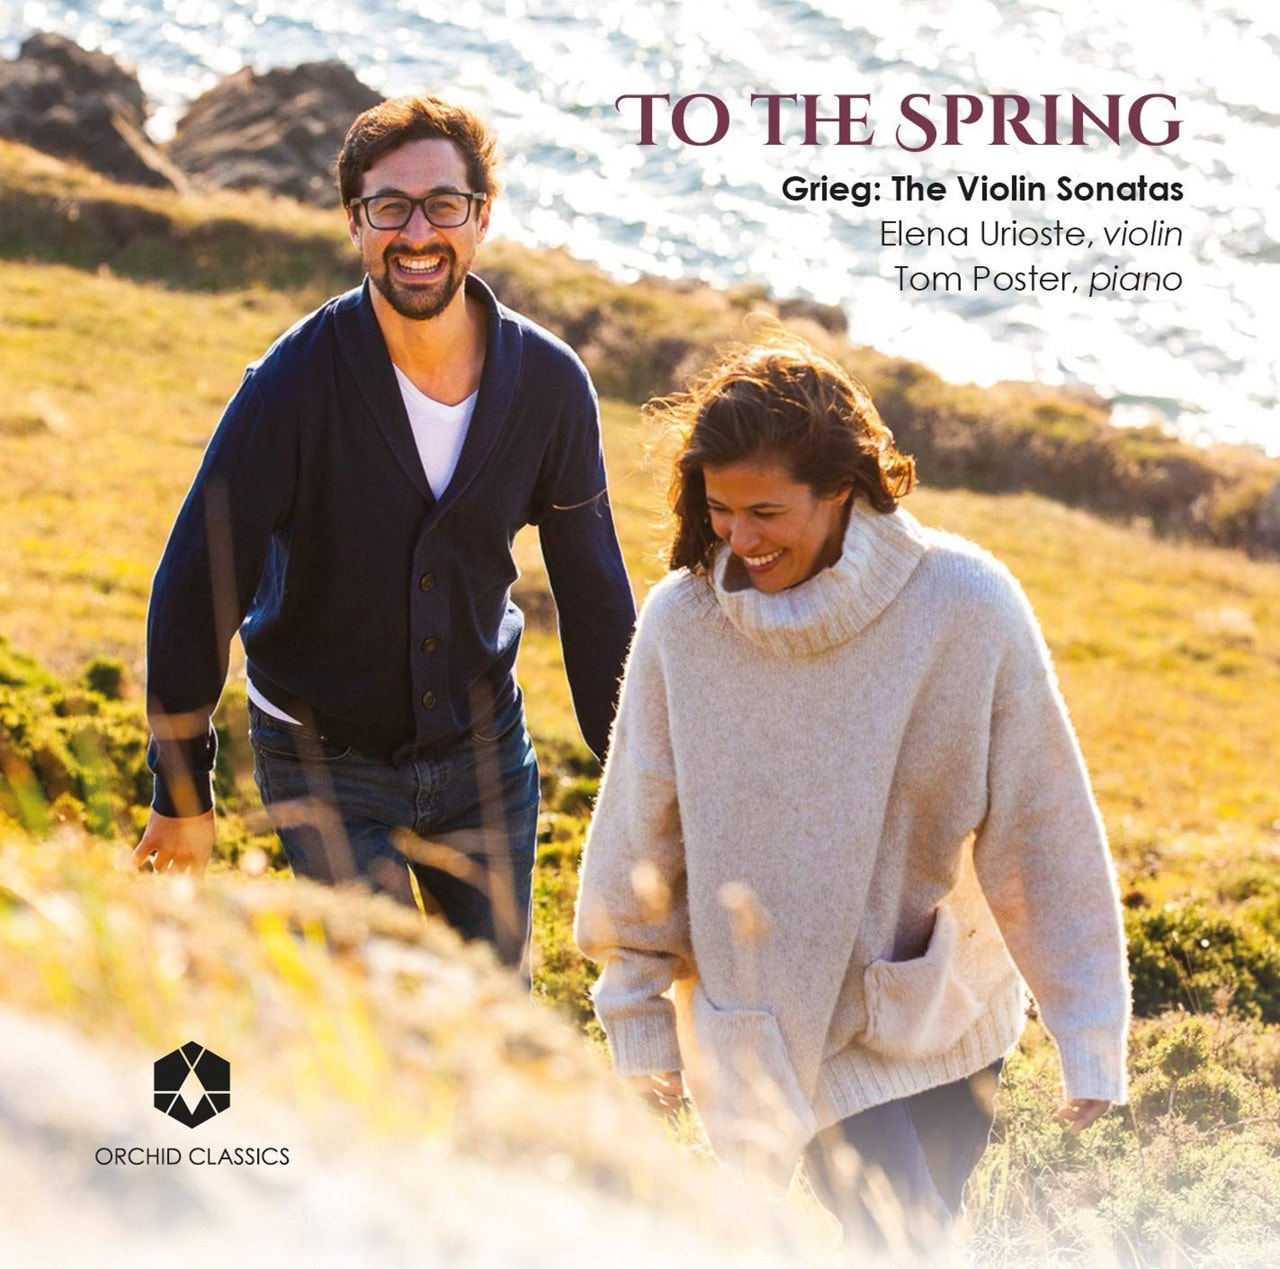 Grieg: The Violin Sonatas: To the Spring - 1